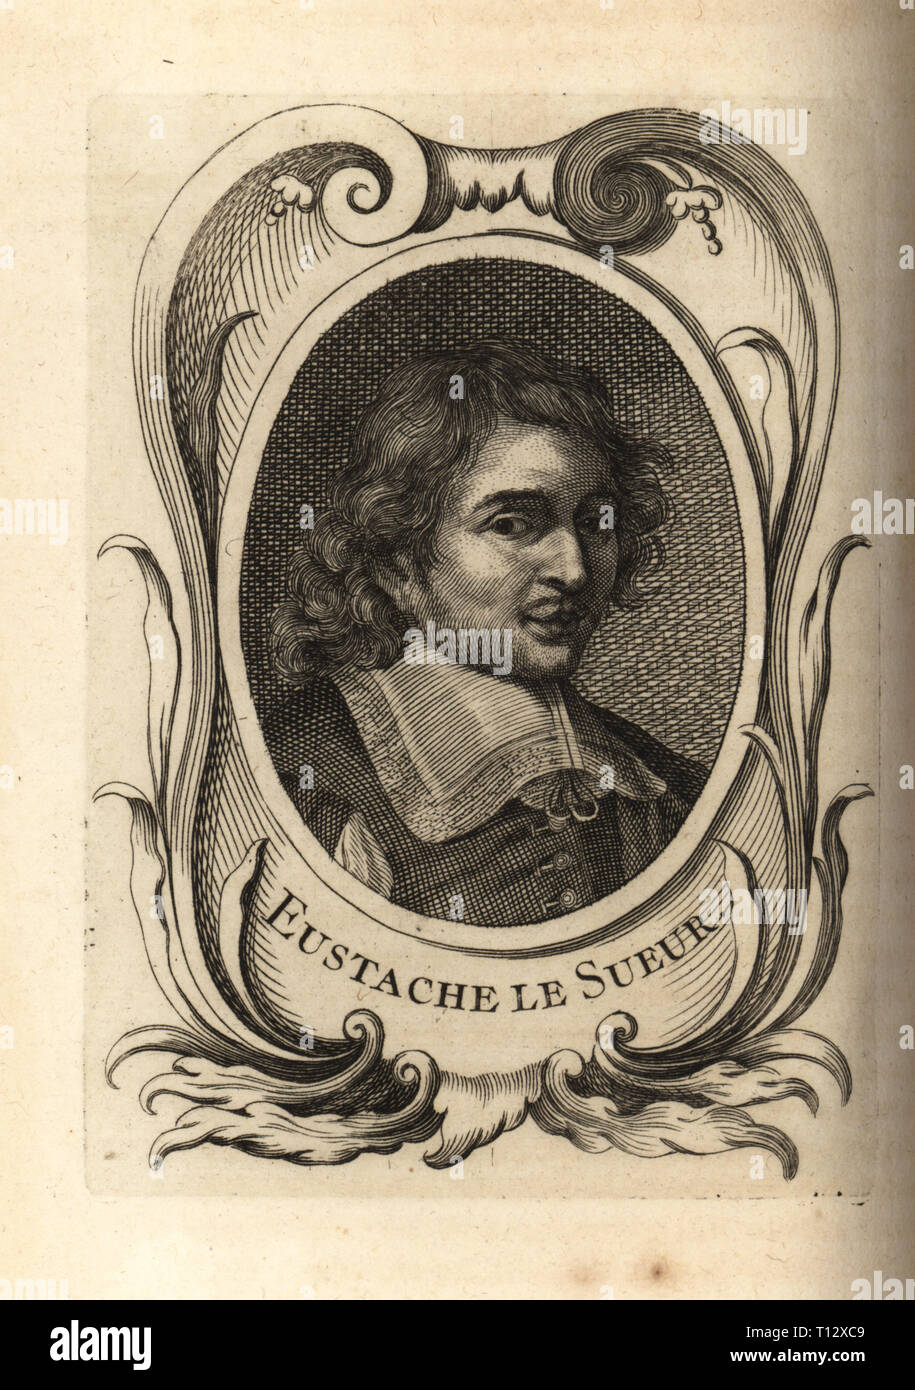 Portrait of Eustache le Sueur, French painter 1617-1655. Copperplate engraving from Antoine-Joseph Dezallier d'Argenville's Abrege de la vie des plus fameux peintres, Lives of the most Famous Artists, de Bure l'Aine, Paris, 1762. Stock Photo